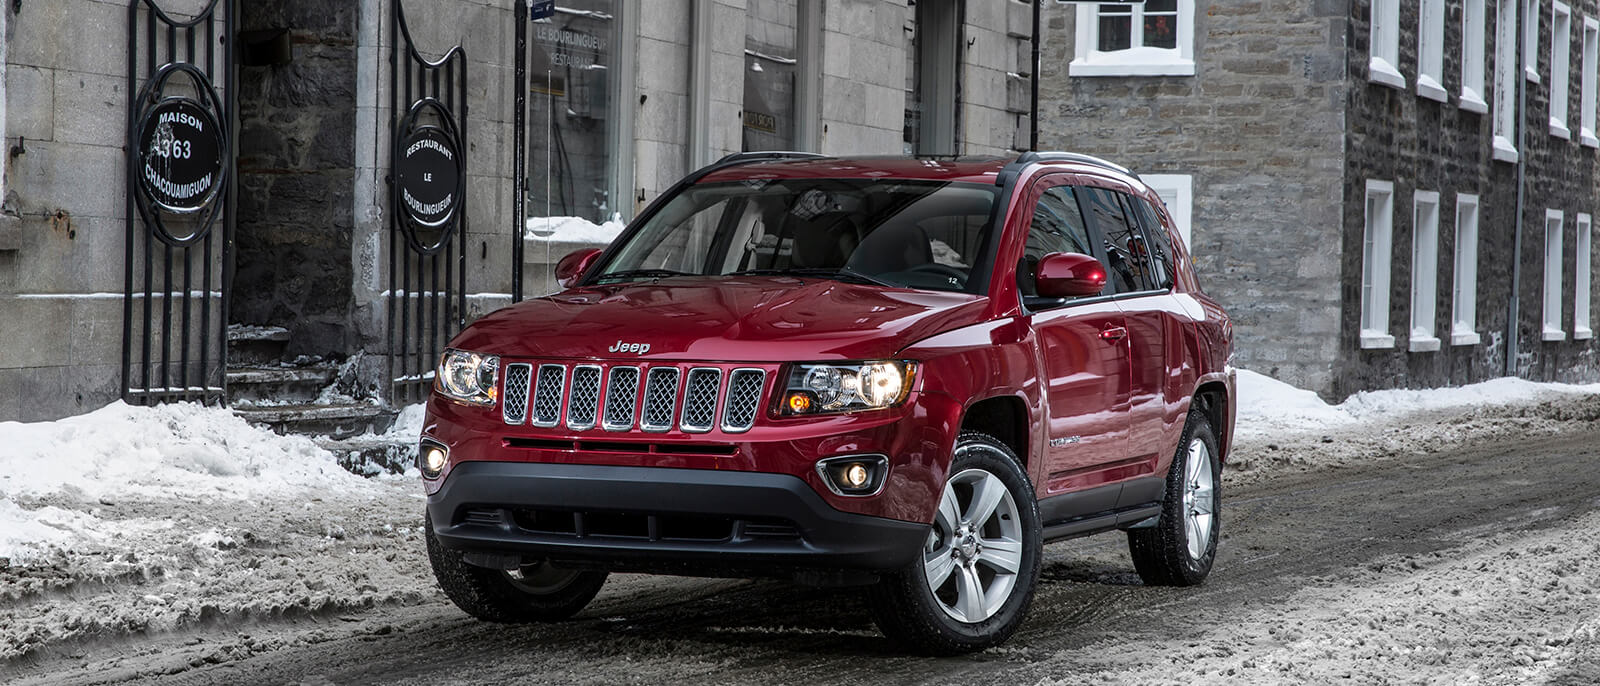 2017 Jeep Compass Red